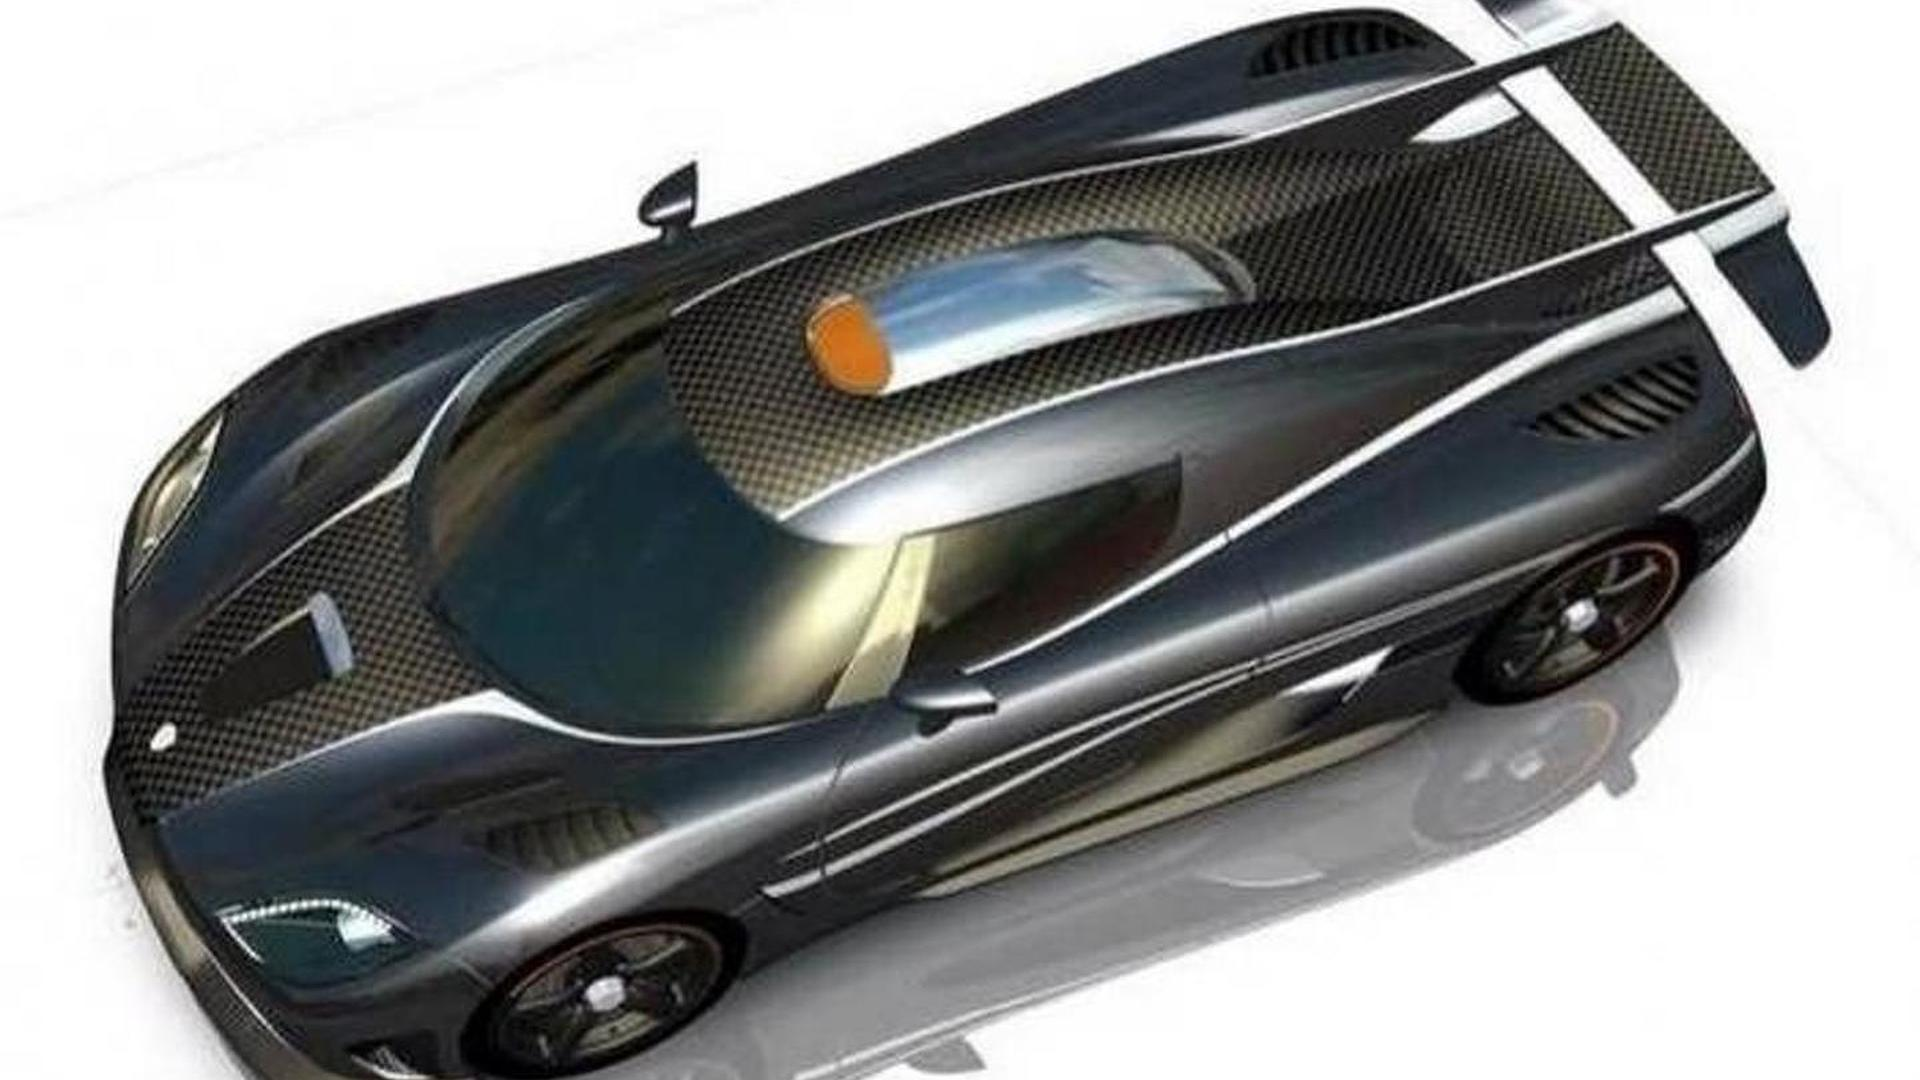 Koenigsegg One:1 shown in additional renders